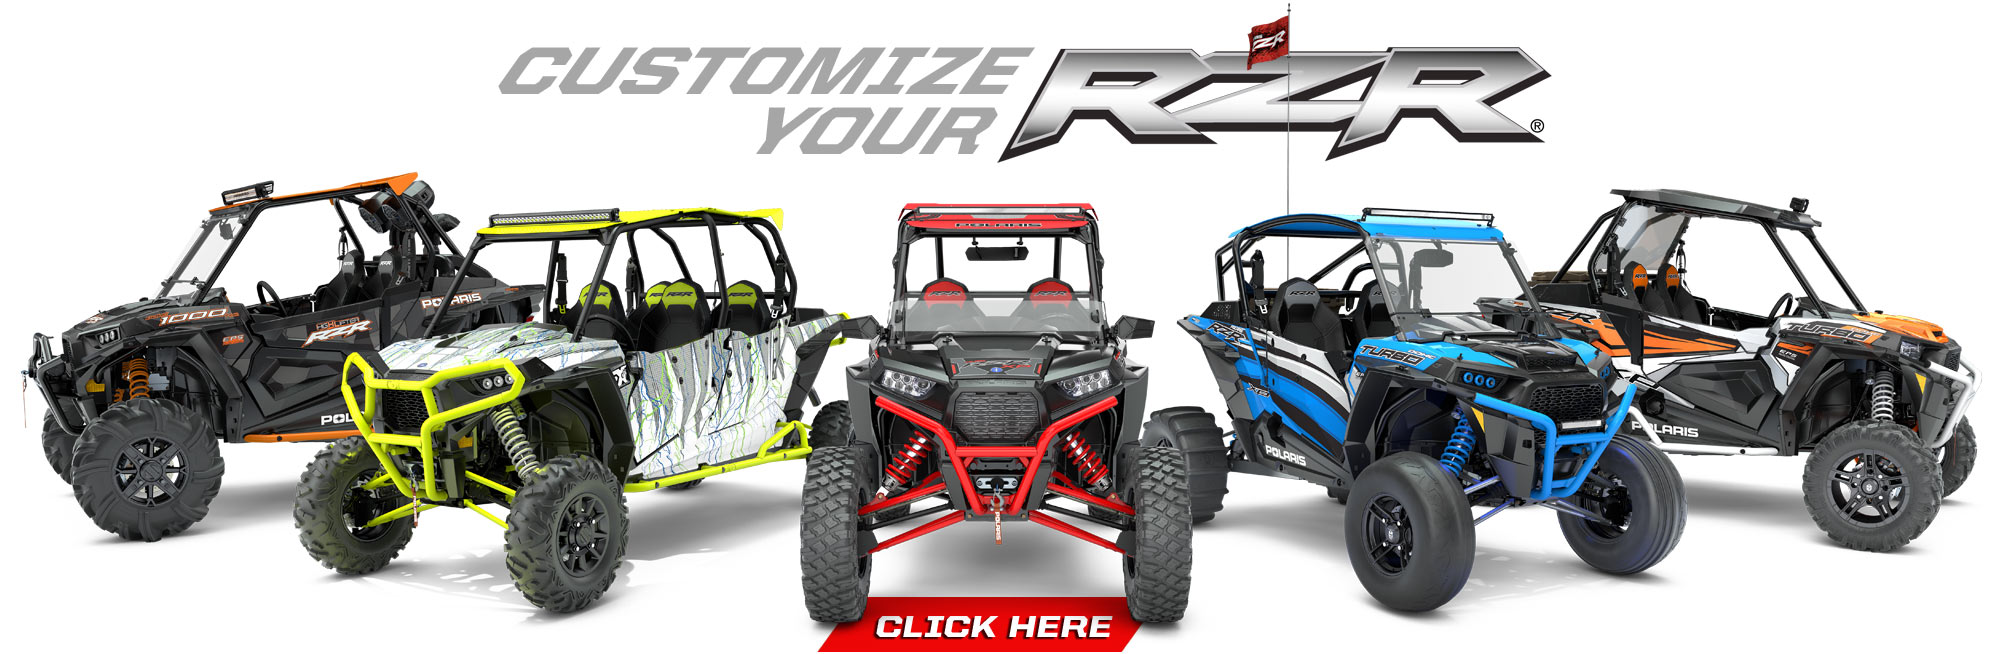 Customize your RZR